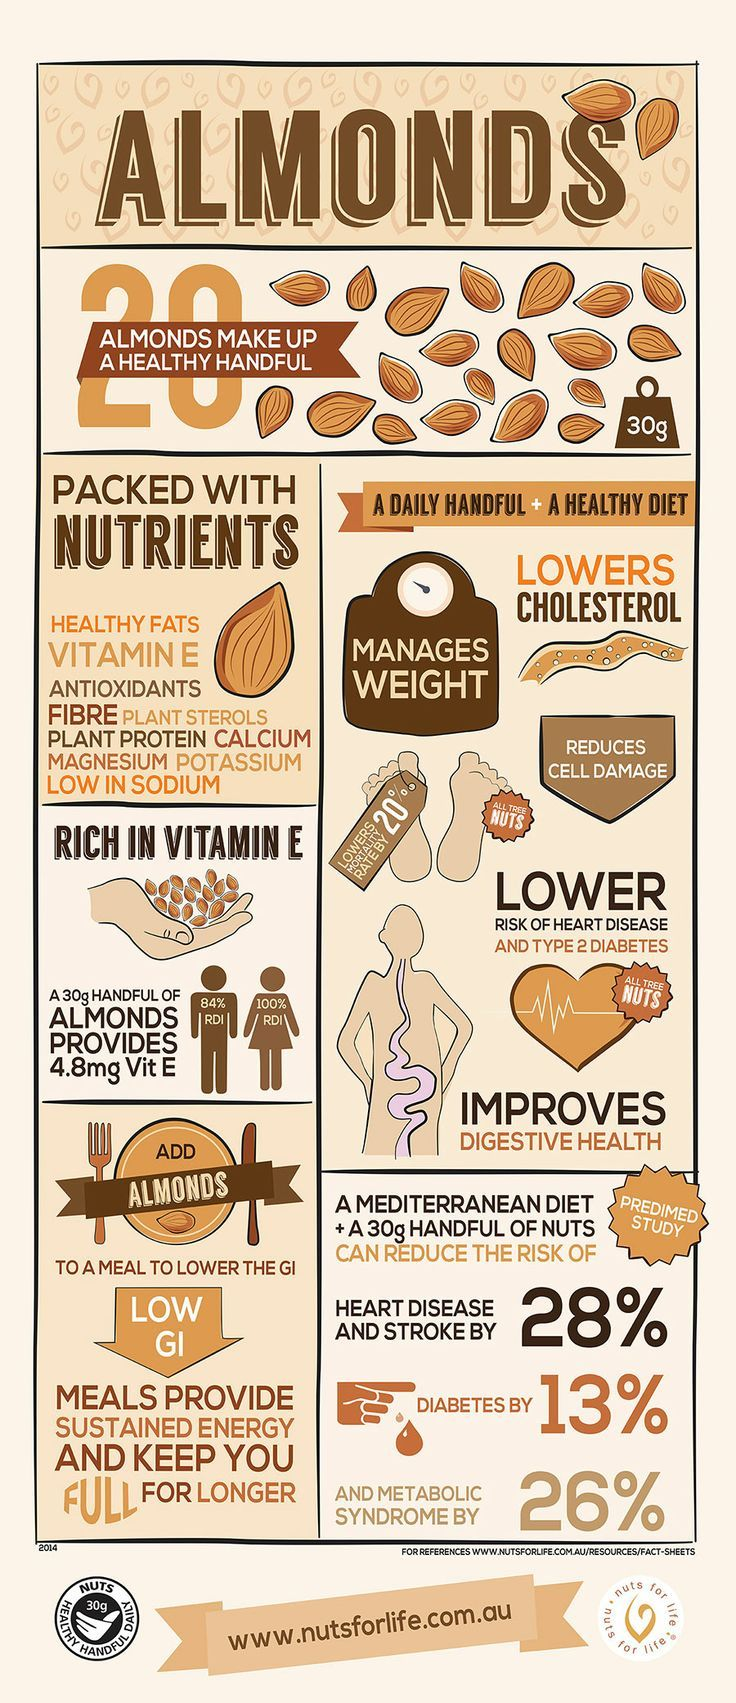 Did you know that almonds are packed with antioxidants and fibers? This infograp…